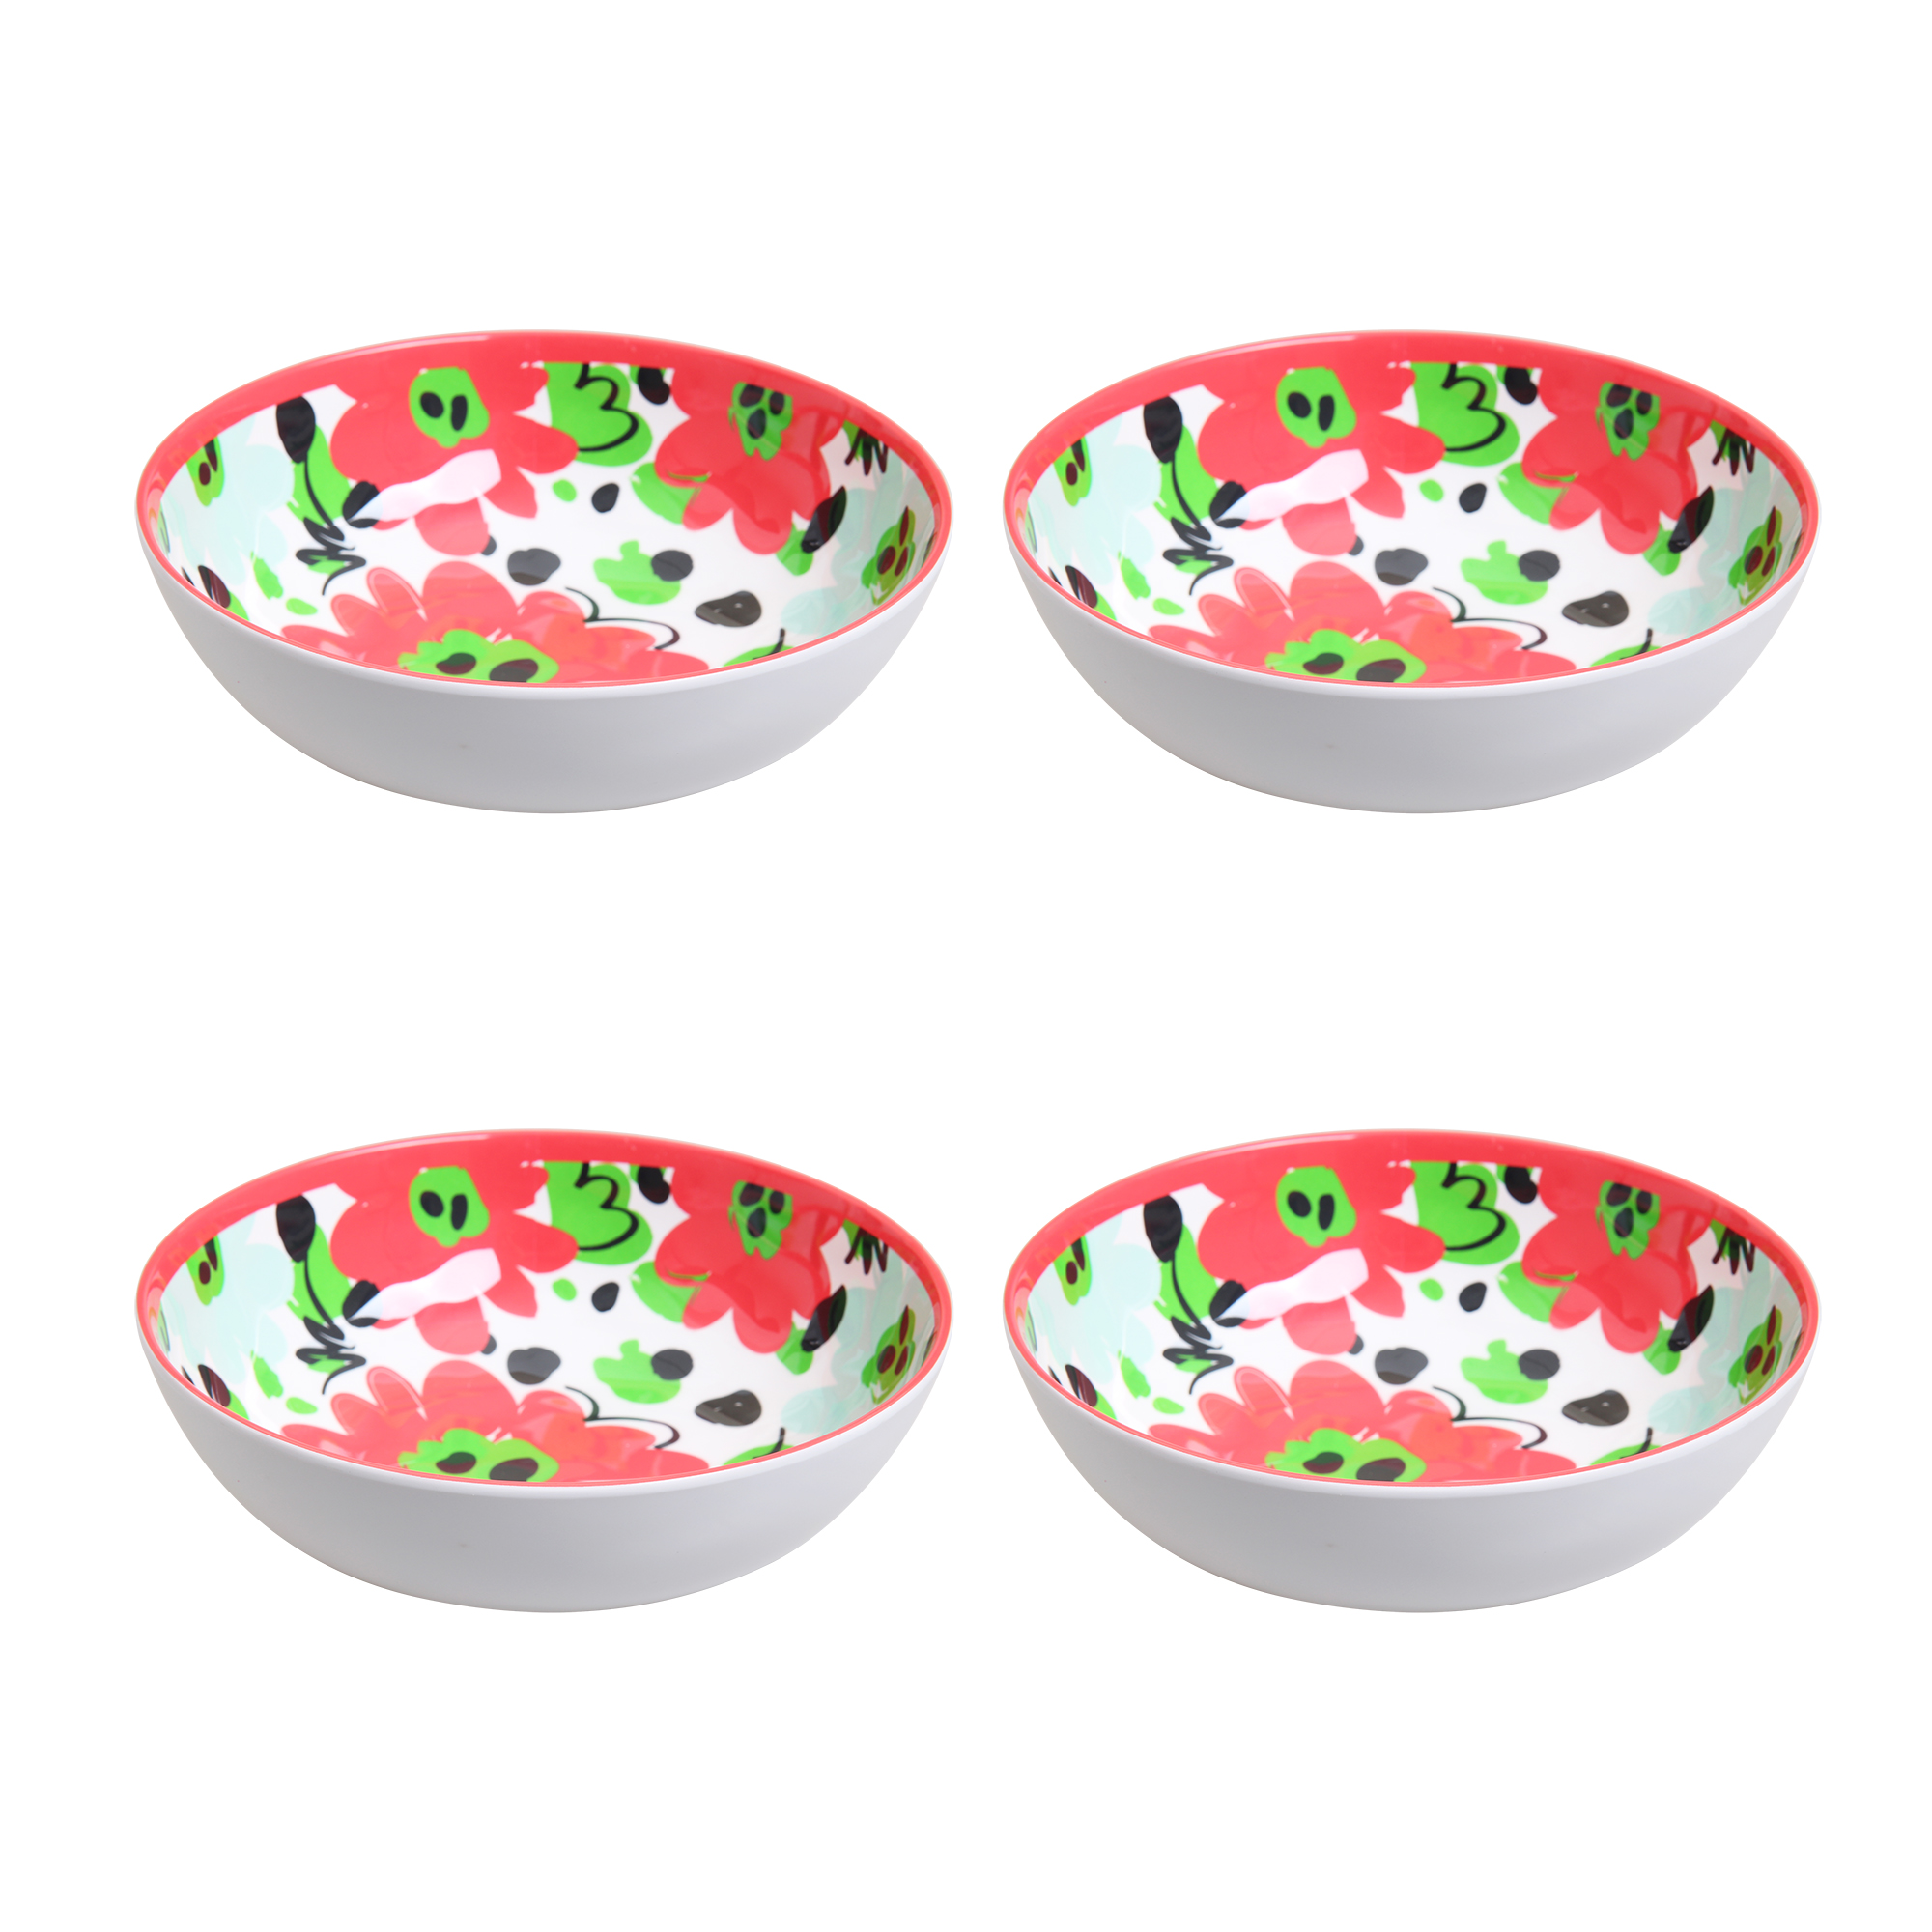 Better Homes & Gardens Outdoor Melamine Red Floral Cereal